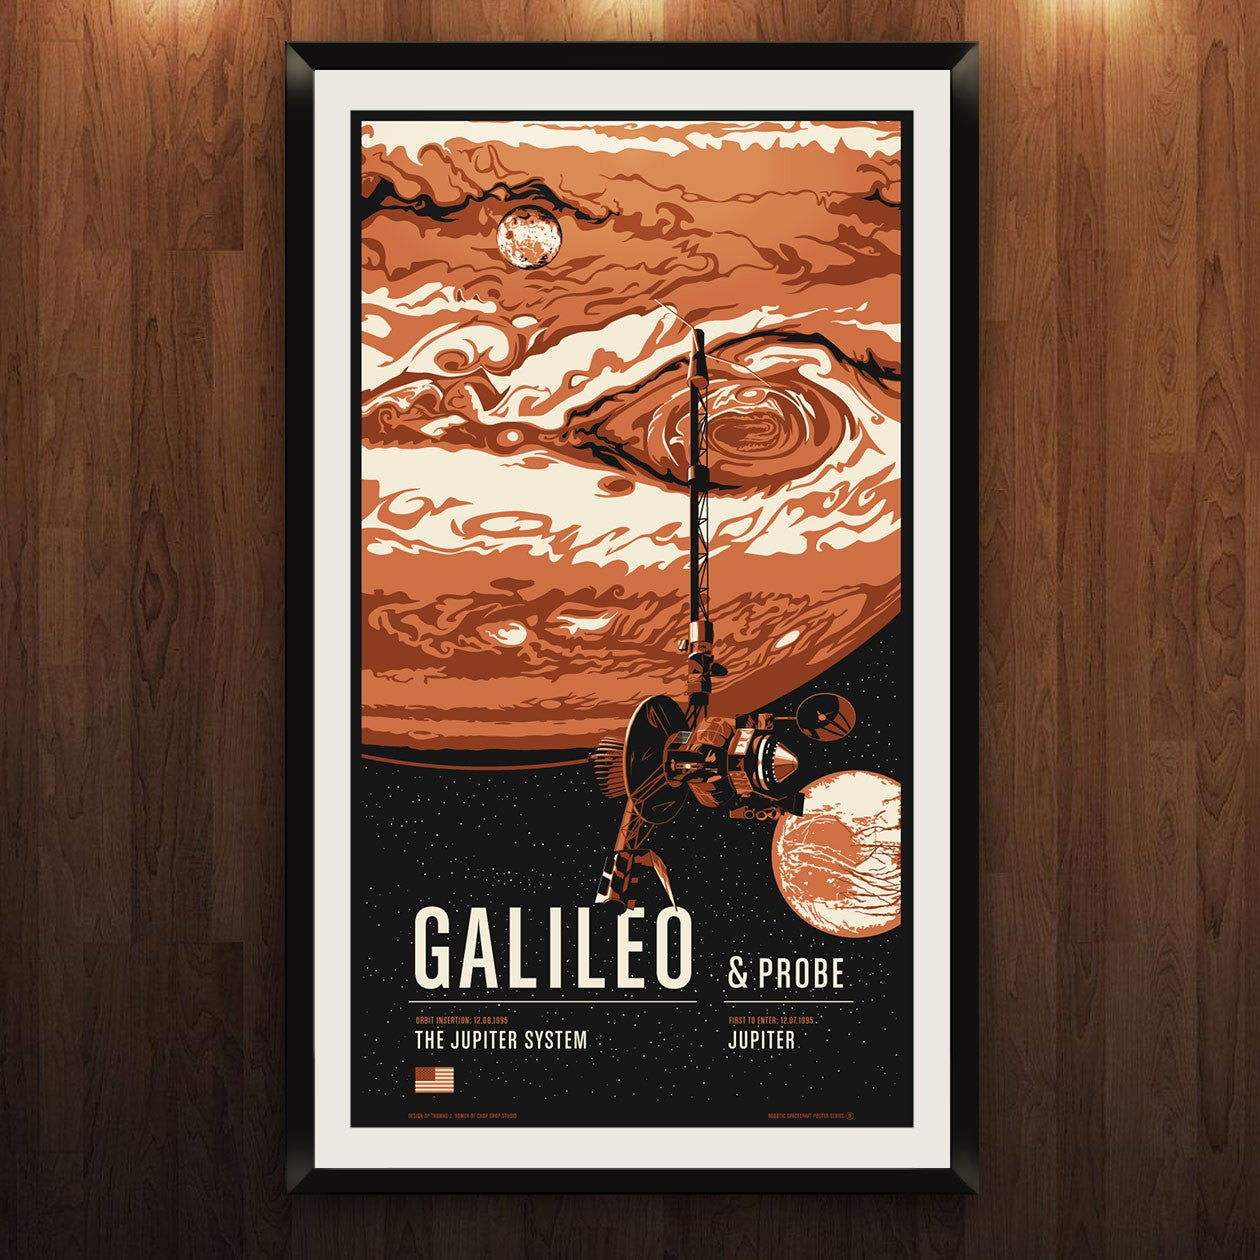 Galileo from the Historic Robotic Spacecraft Series